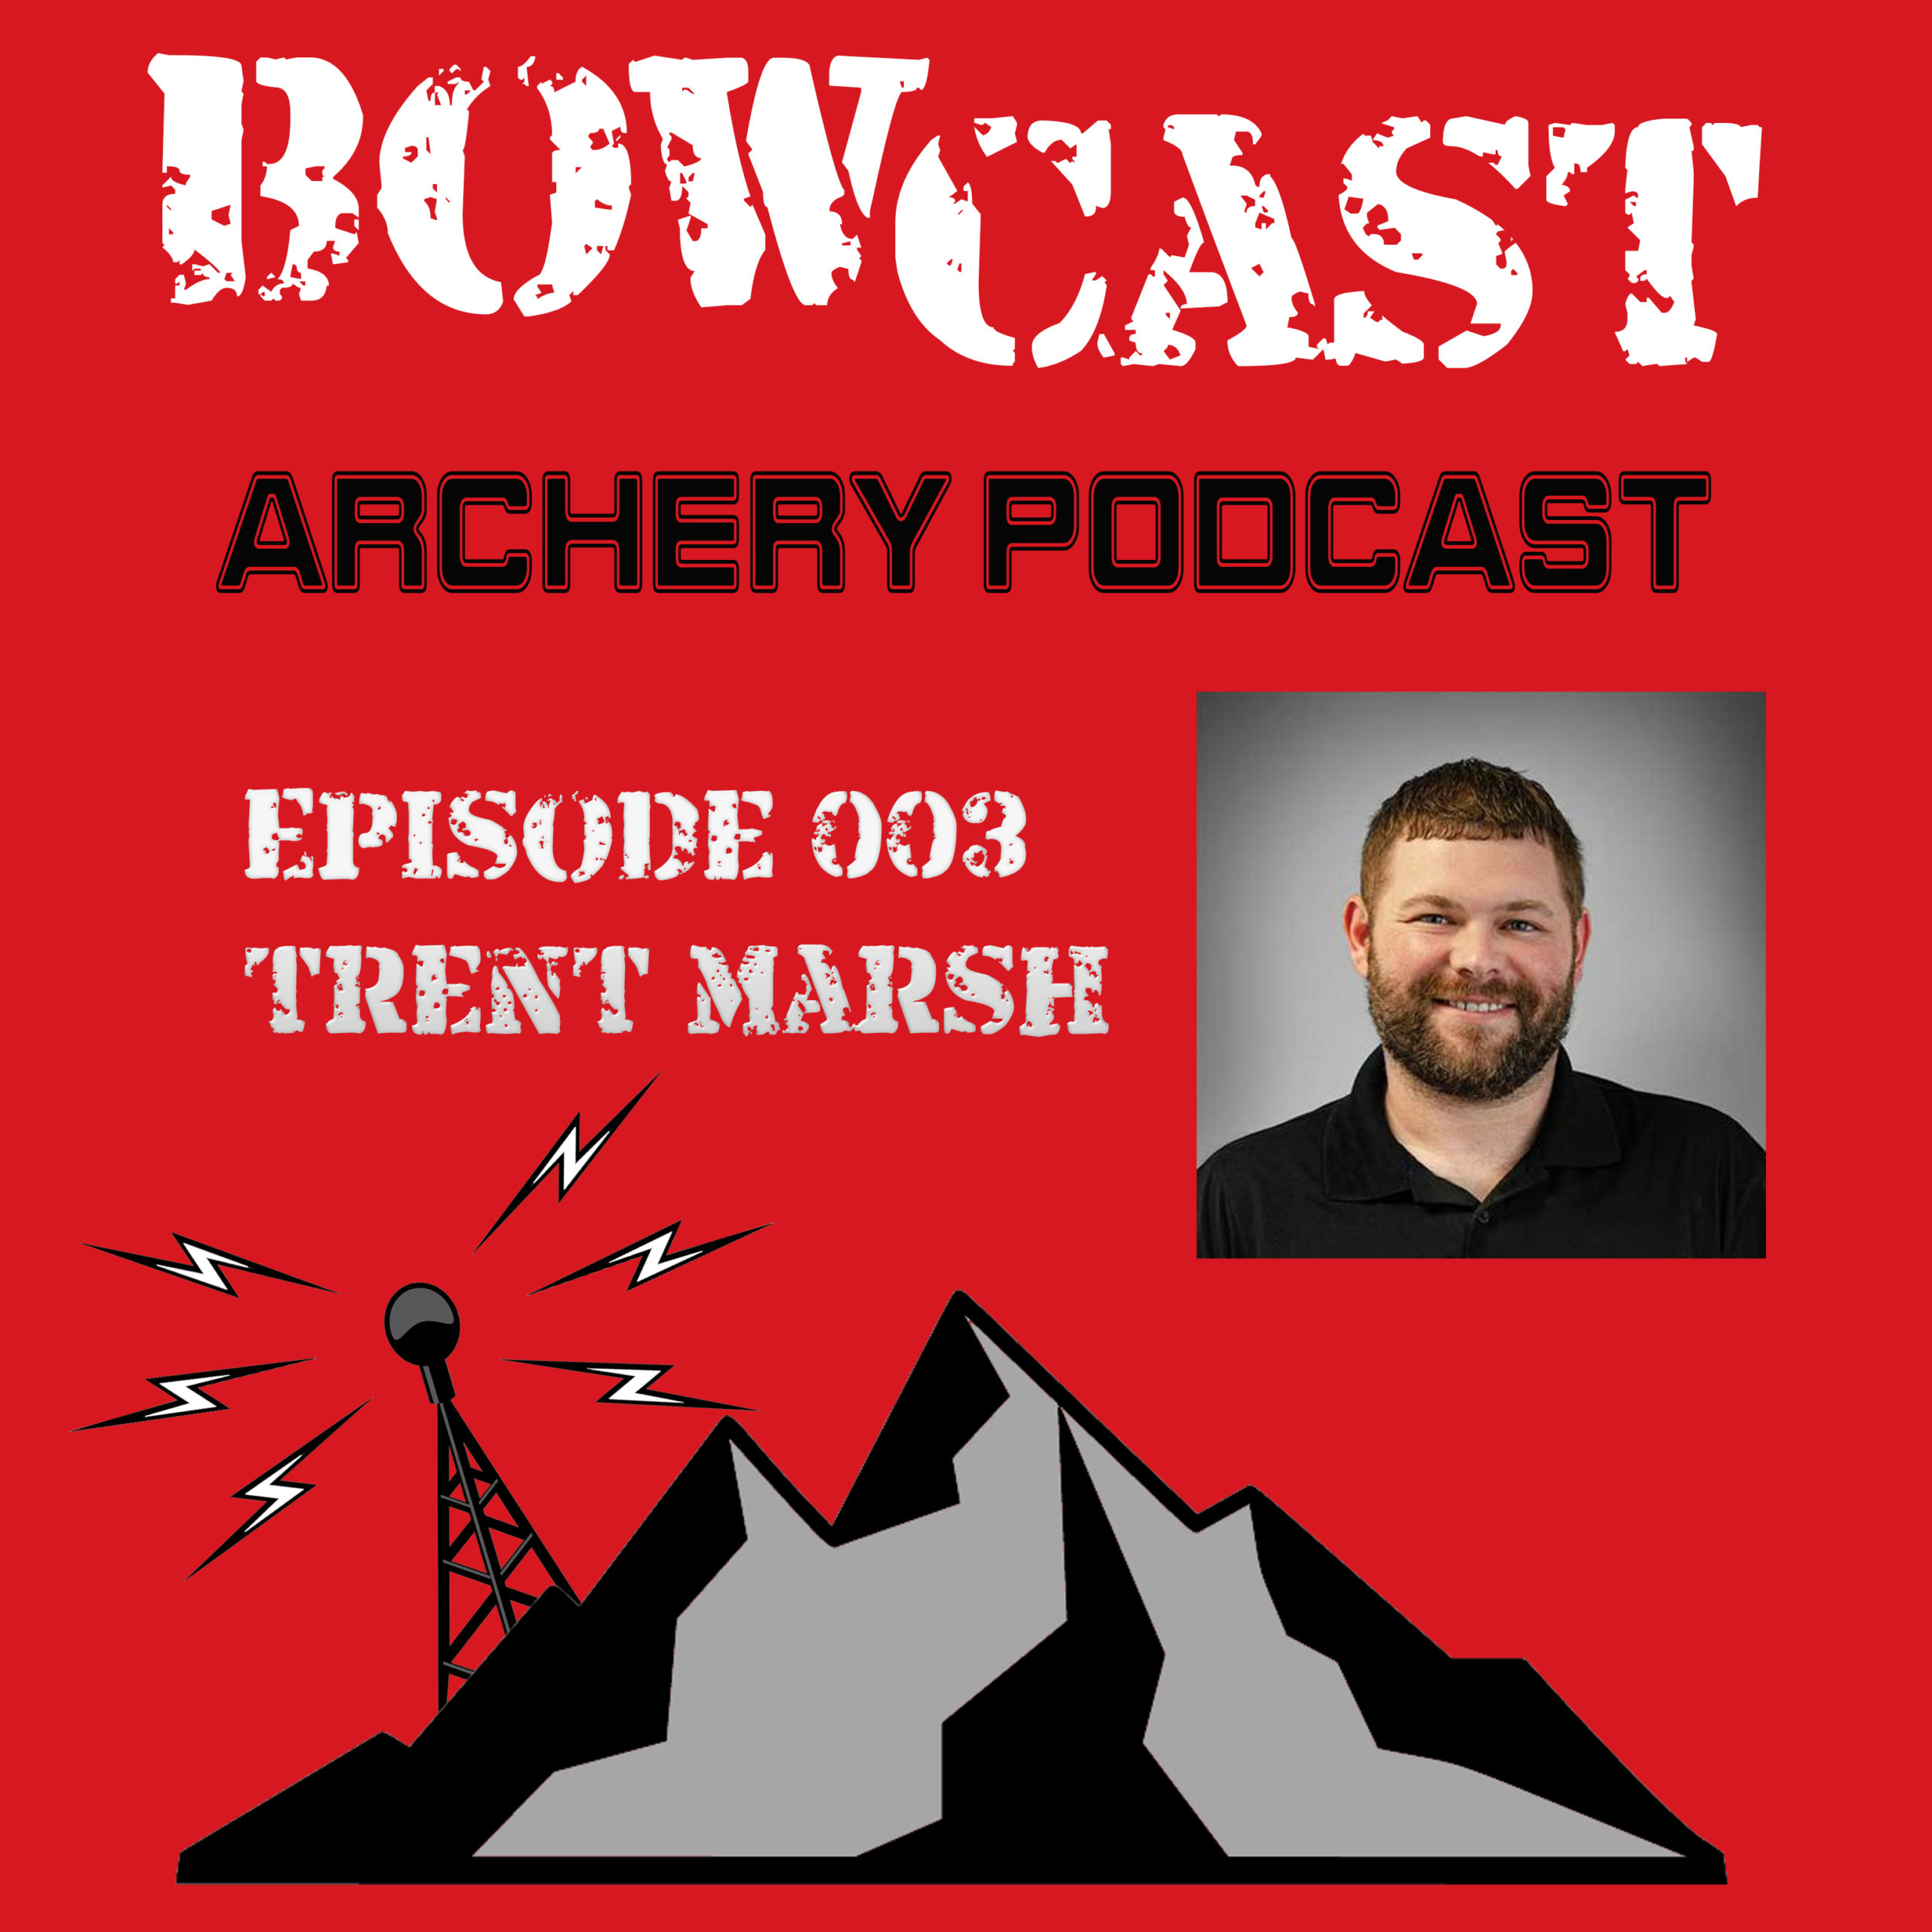 Bowcast Archery Podcast 003 - Trent Marsh - 3 Tips for Setting Your Trailcam